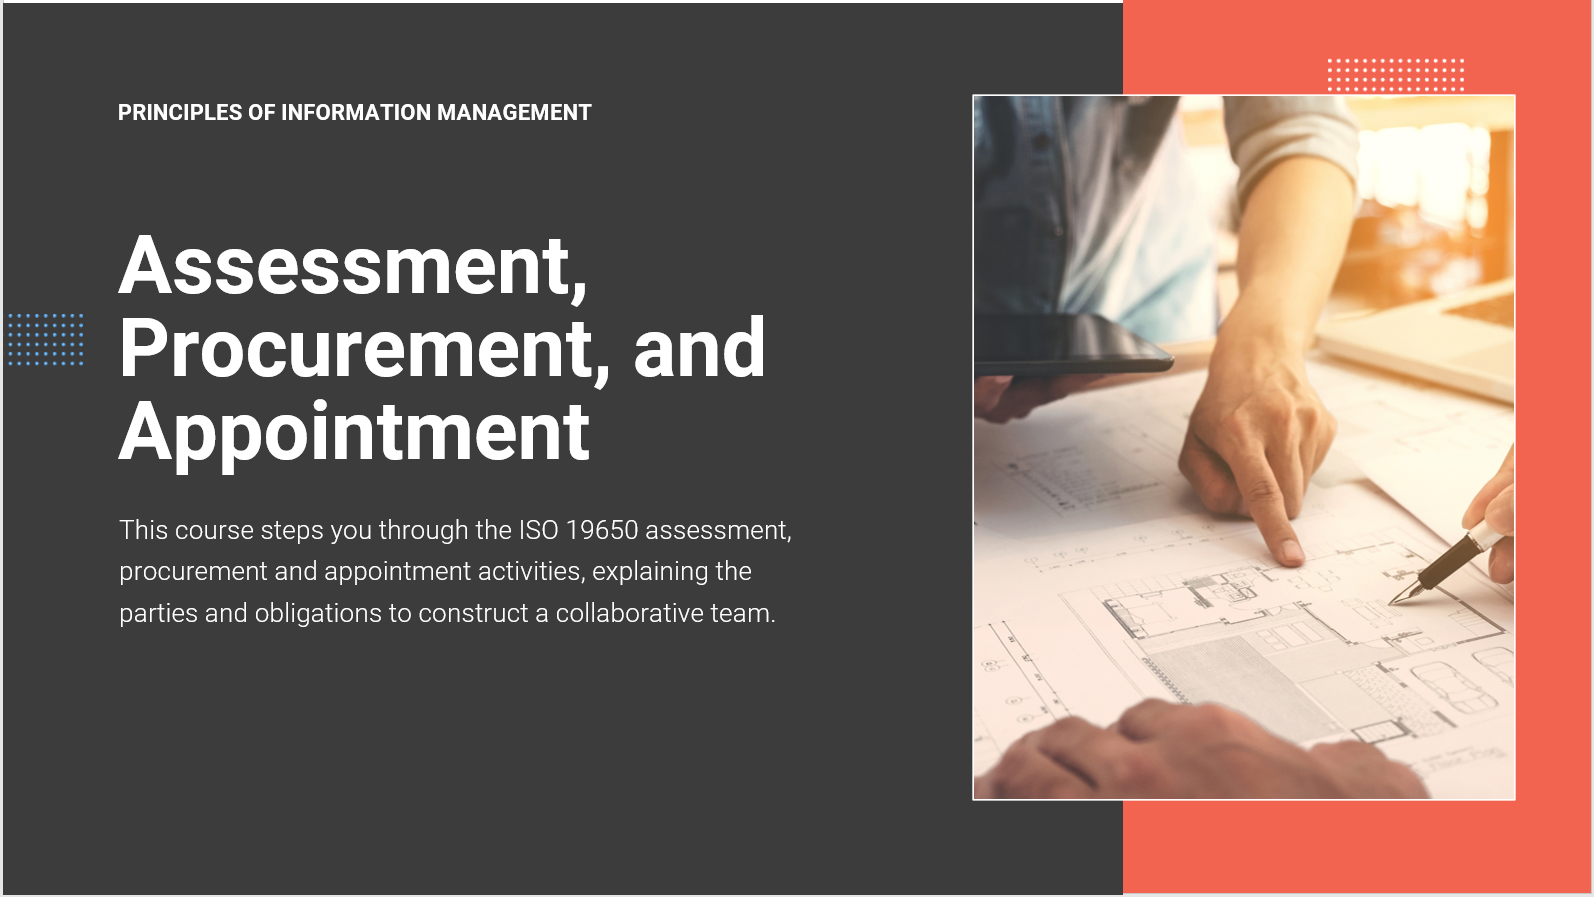 ISO 19650-2 Assessment, Procurement, and Appointment